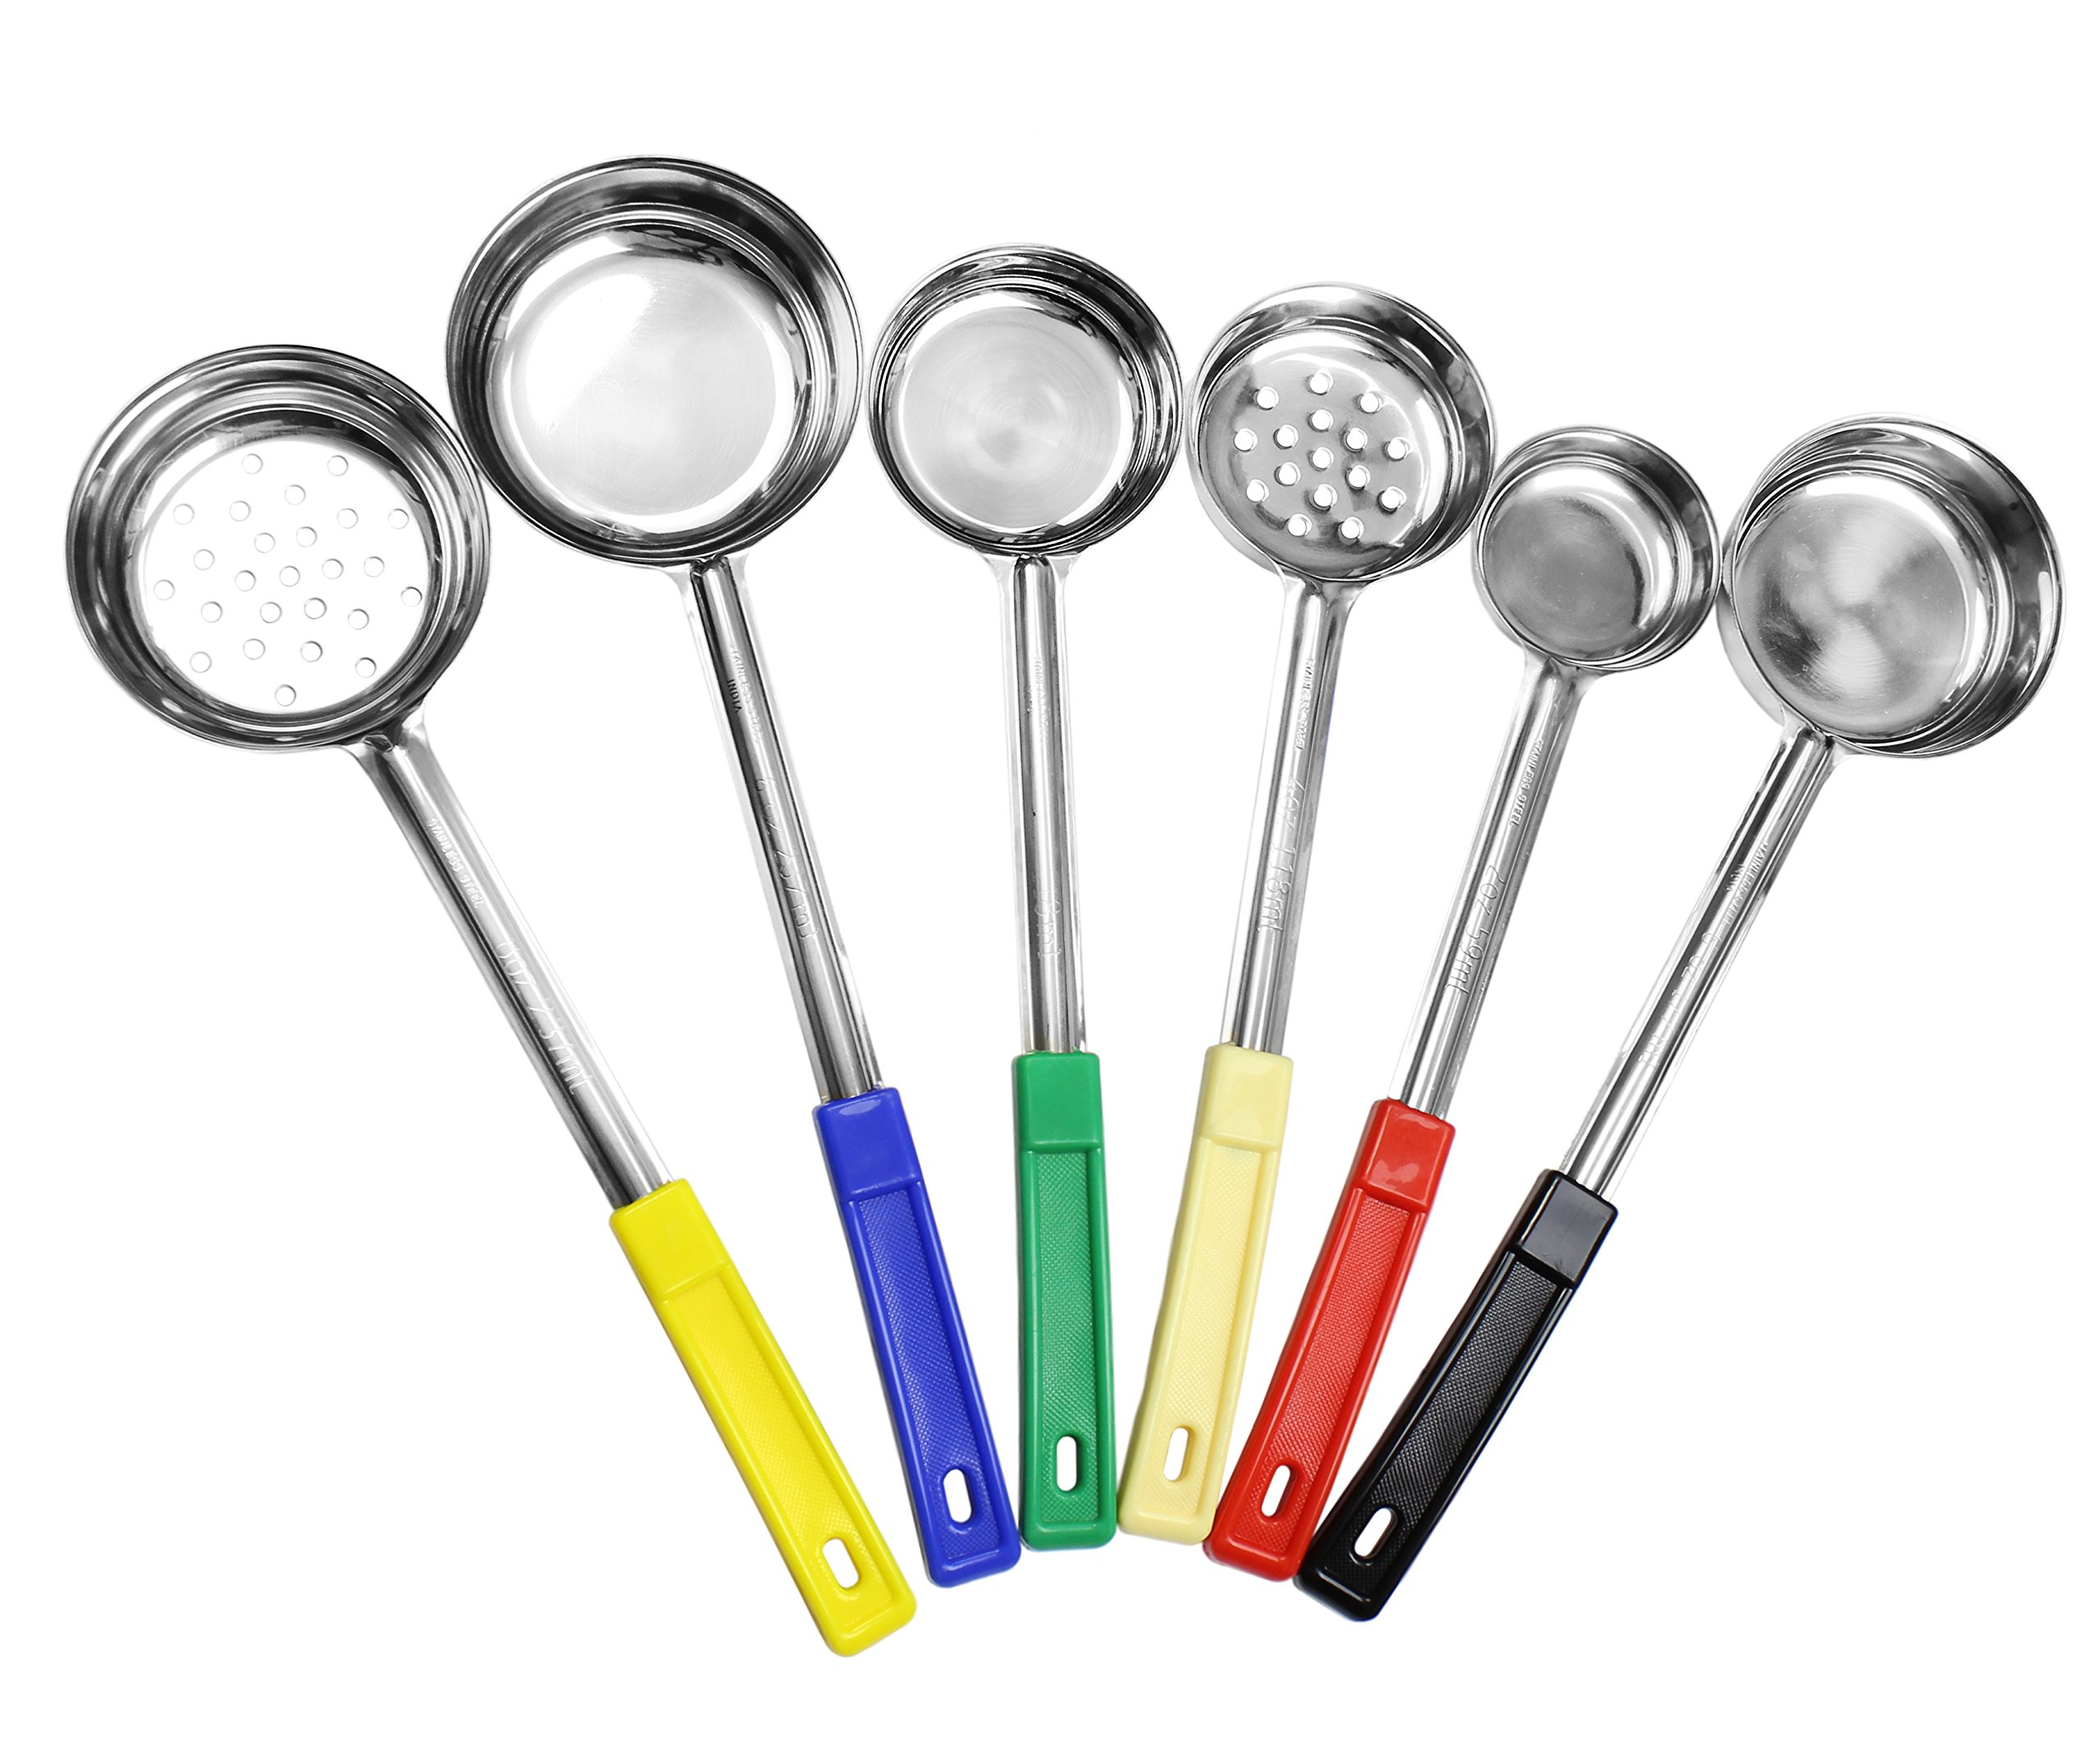 Portion Control Serving Spoons (6-Piece Ladle Set); w 1/4 Cup, 1/2 Cup, 3/4 Cup & 1 Cup (2, 4, 6, 8-Ounce) & Slotted 1/2 & 1 Cup Utensils/Spoodles